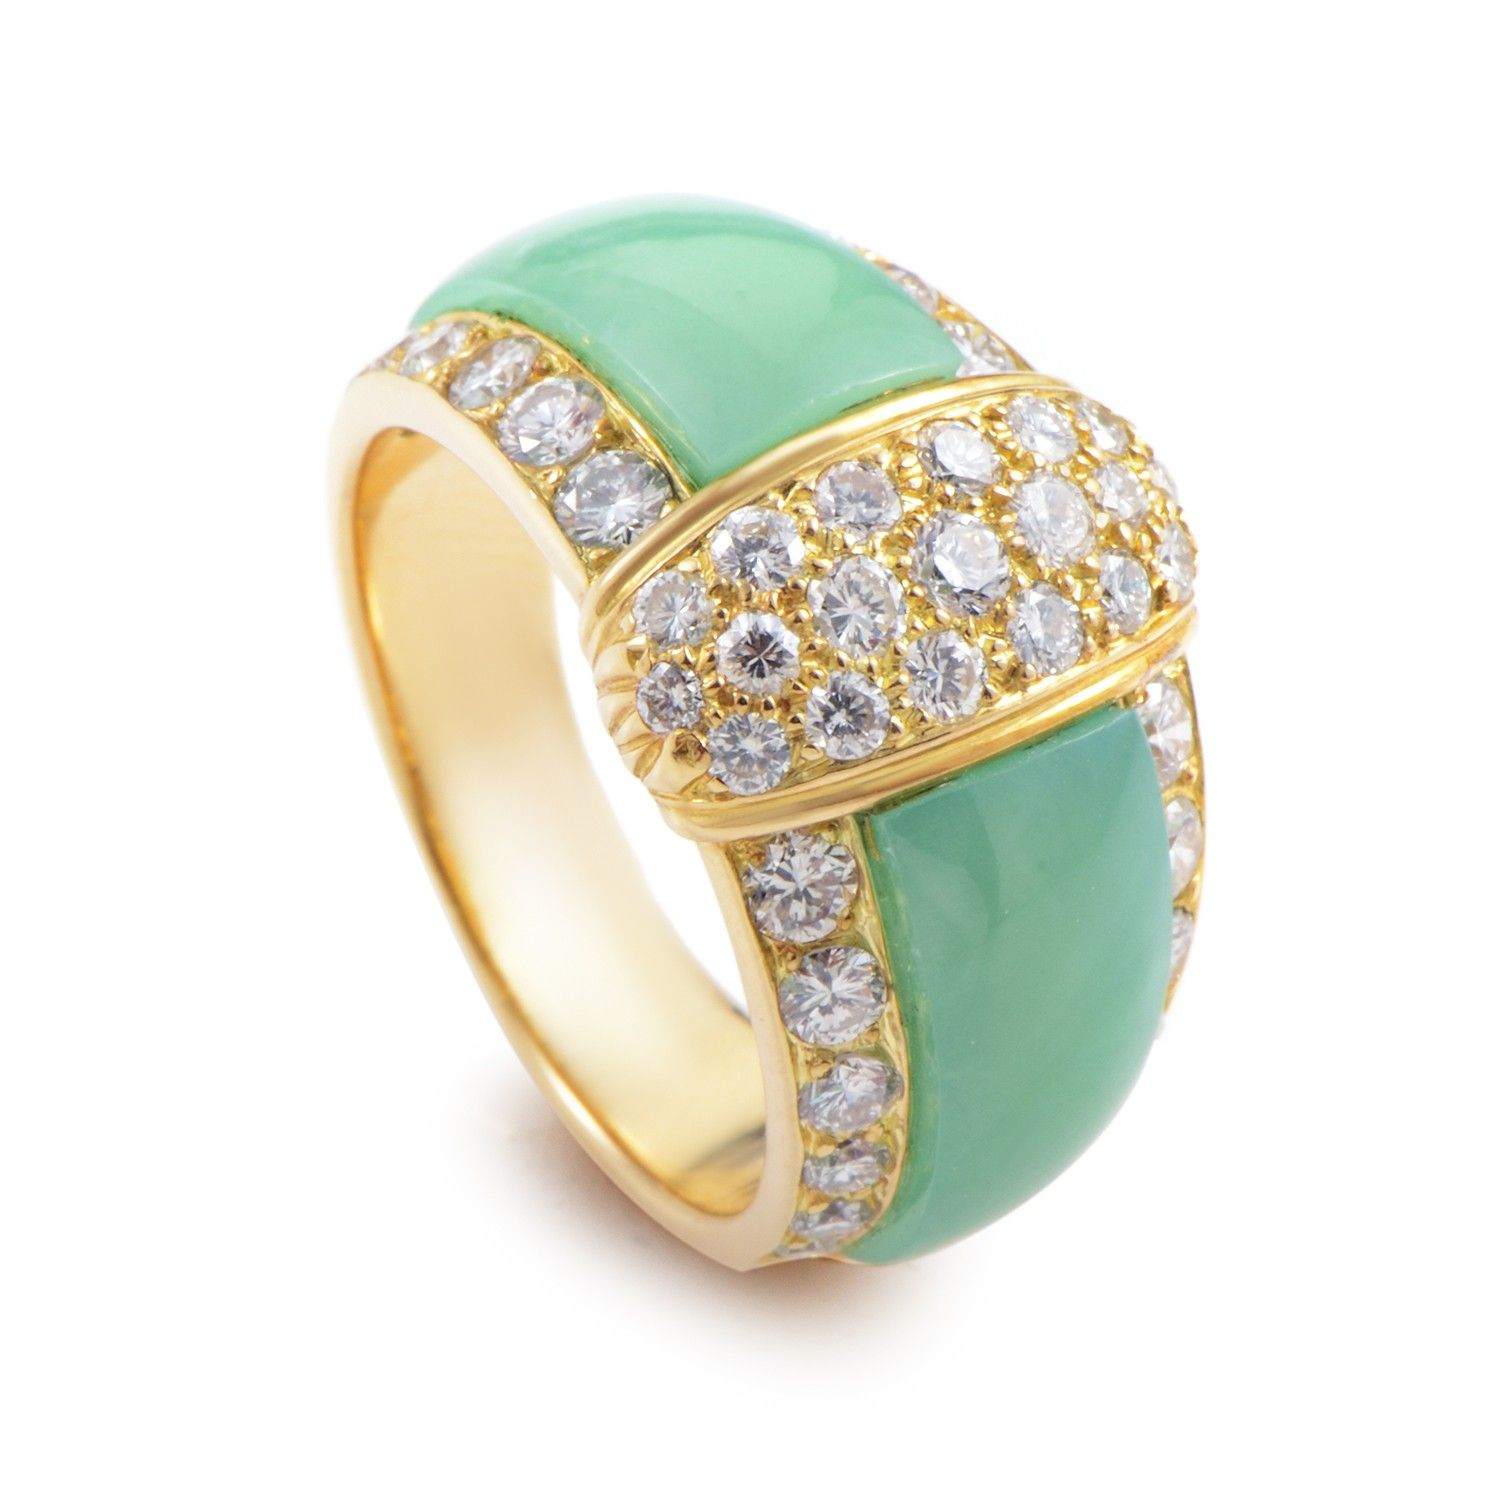 Van cleef amp arpels vca 18k yellow gold ruby cabochon amp diamond - Van Cleef And Arpels Van Cleef And Arpels 18k Yellow Gold Diamond And Chrysoprase Ring